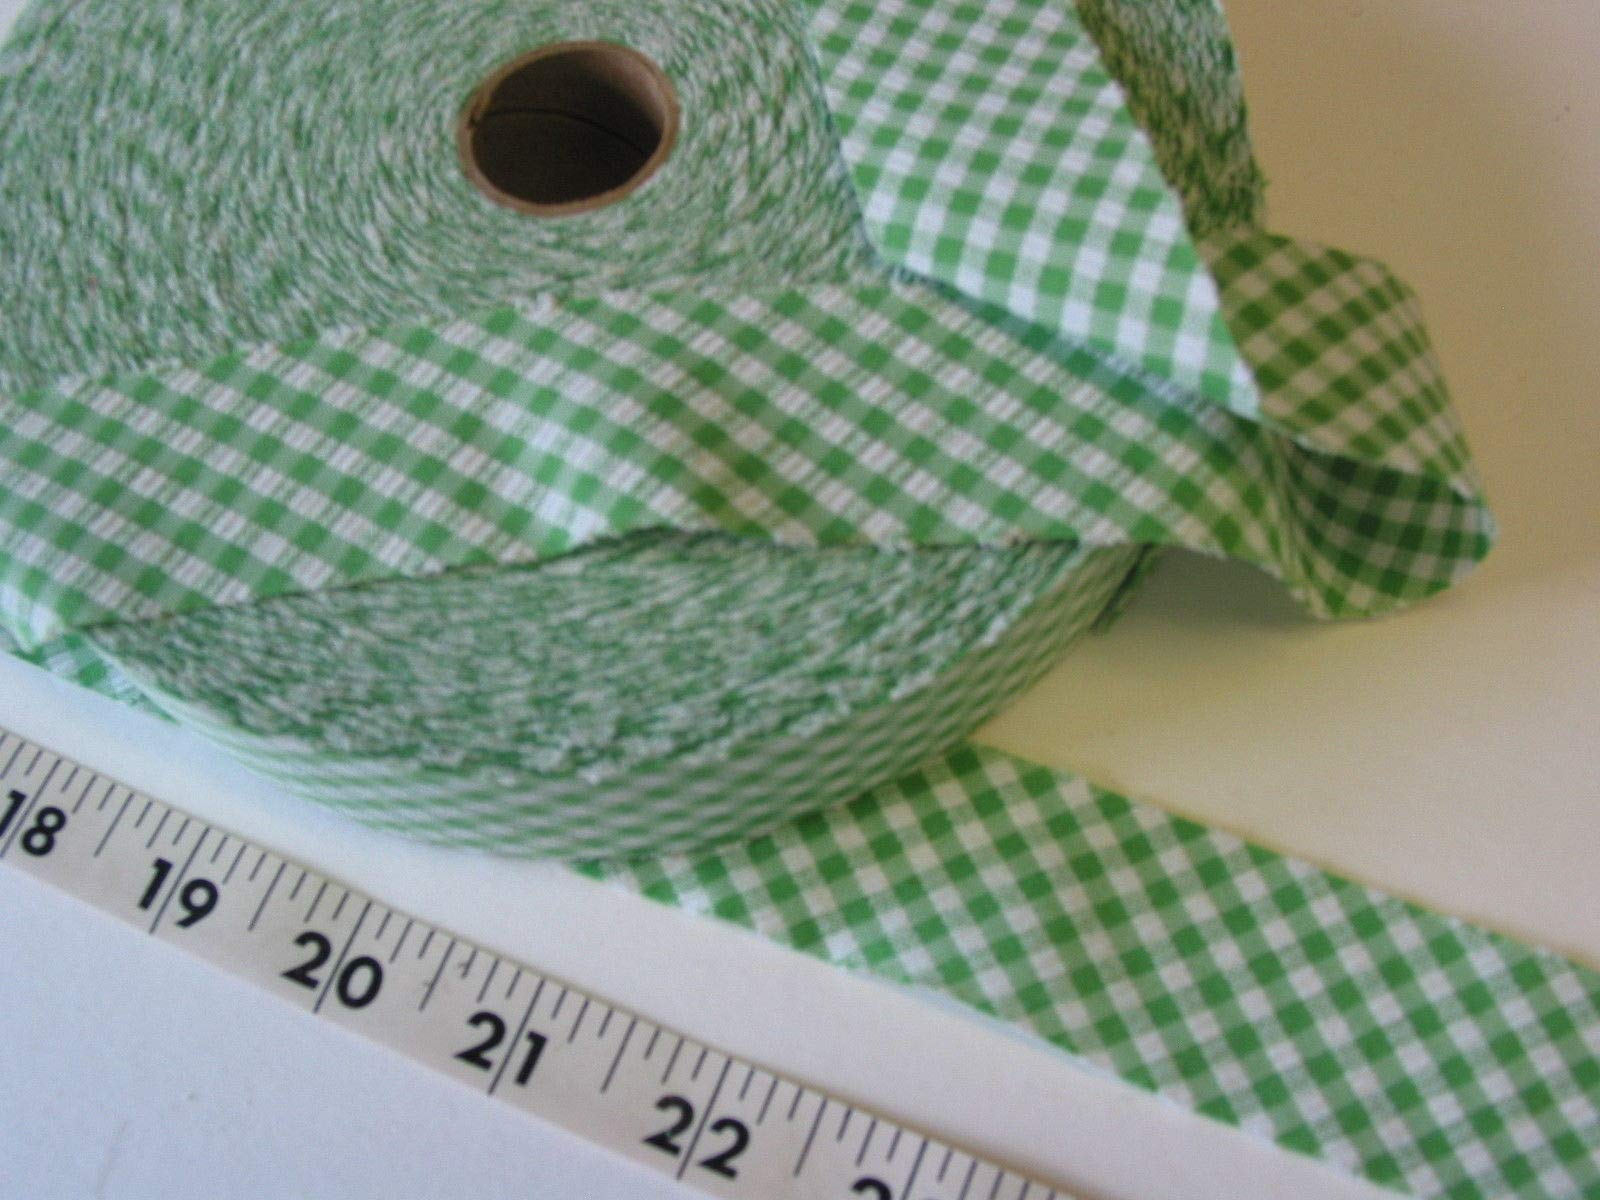 Trim Bias Binding Unfolded Checked Seersucker Green 1 3/8 W 1 Roll by Gonling